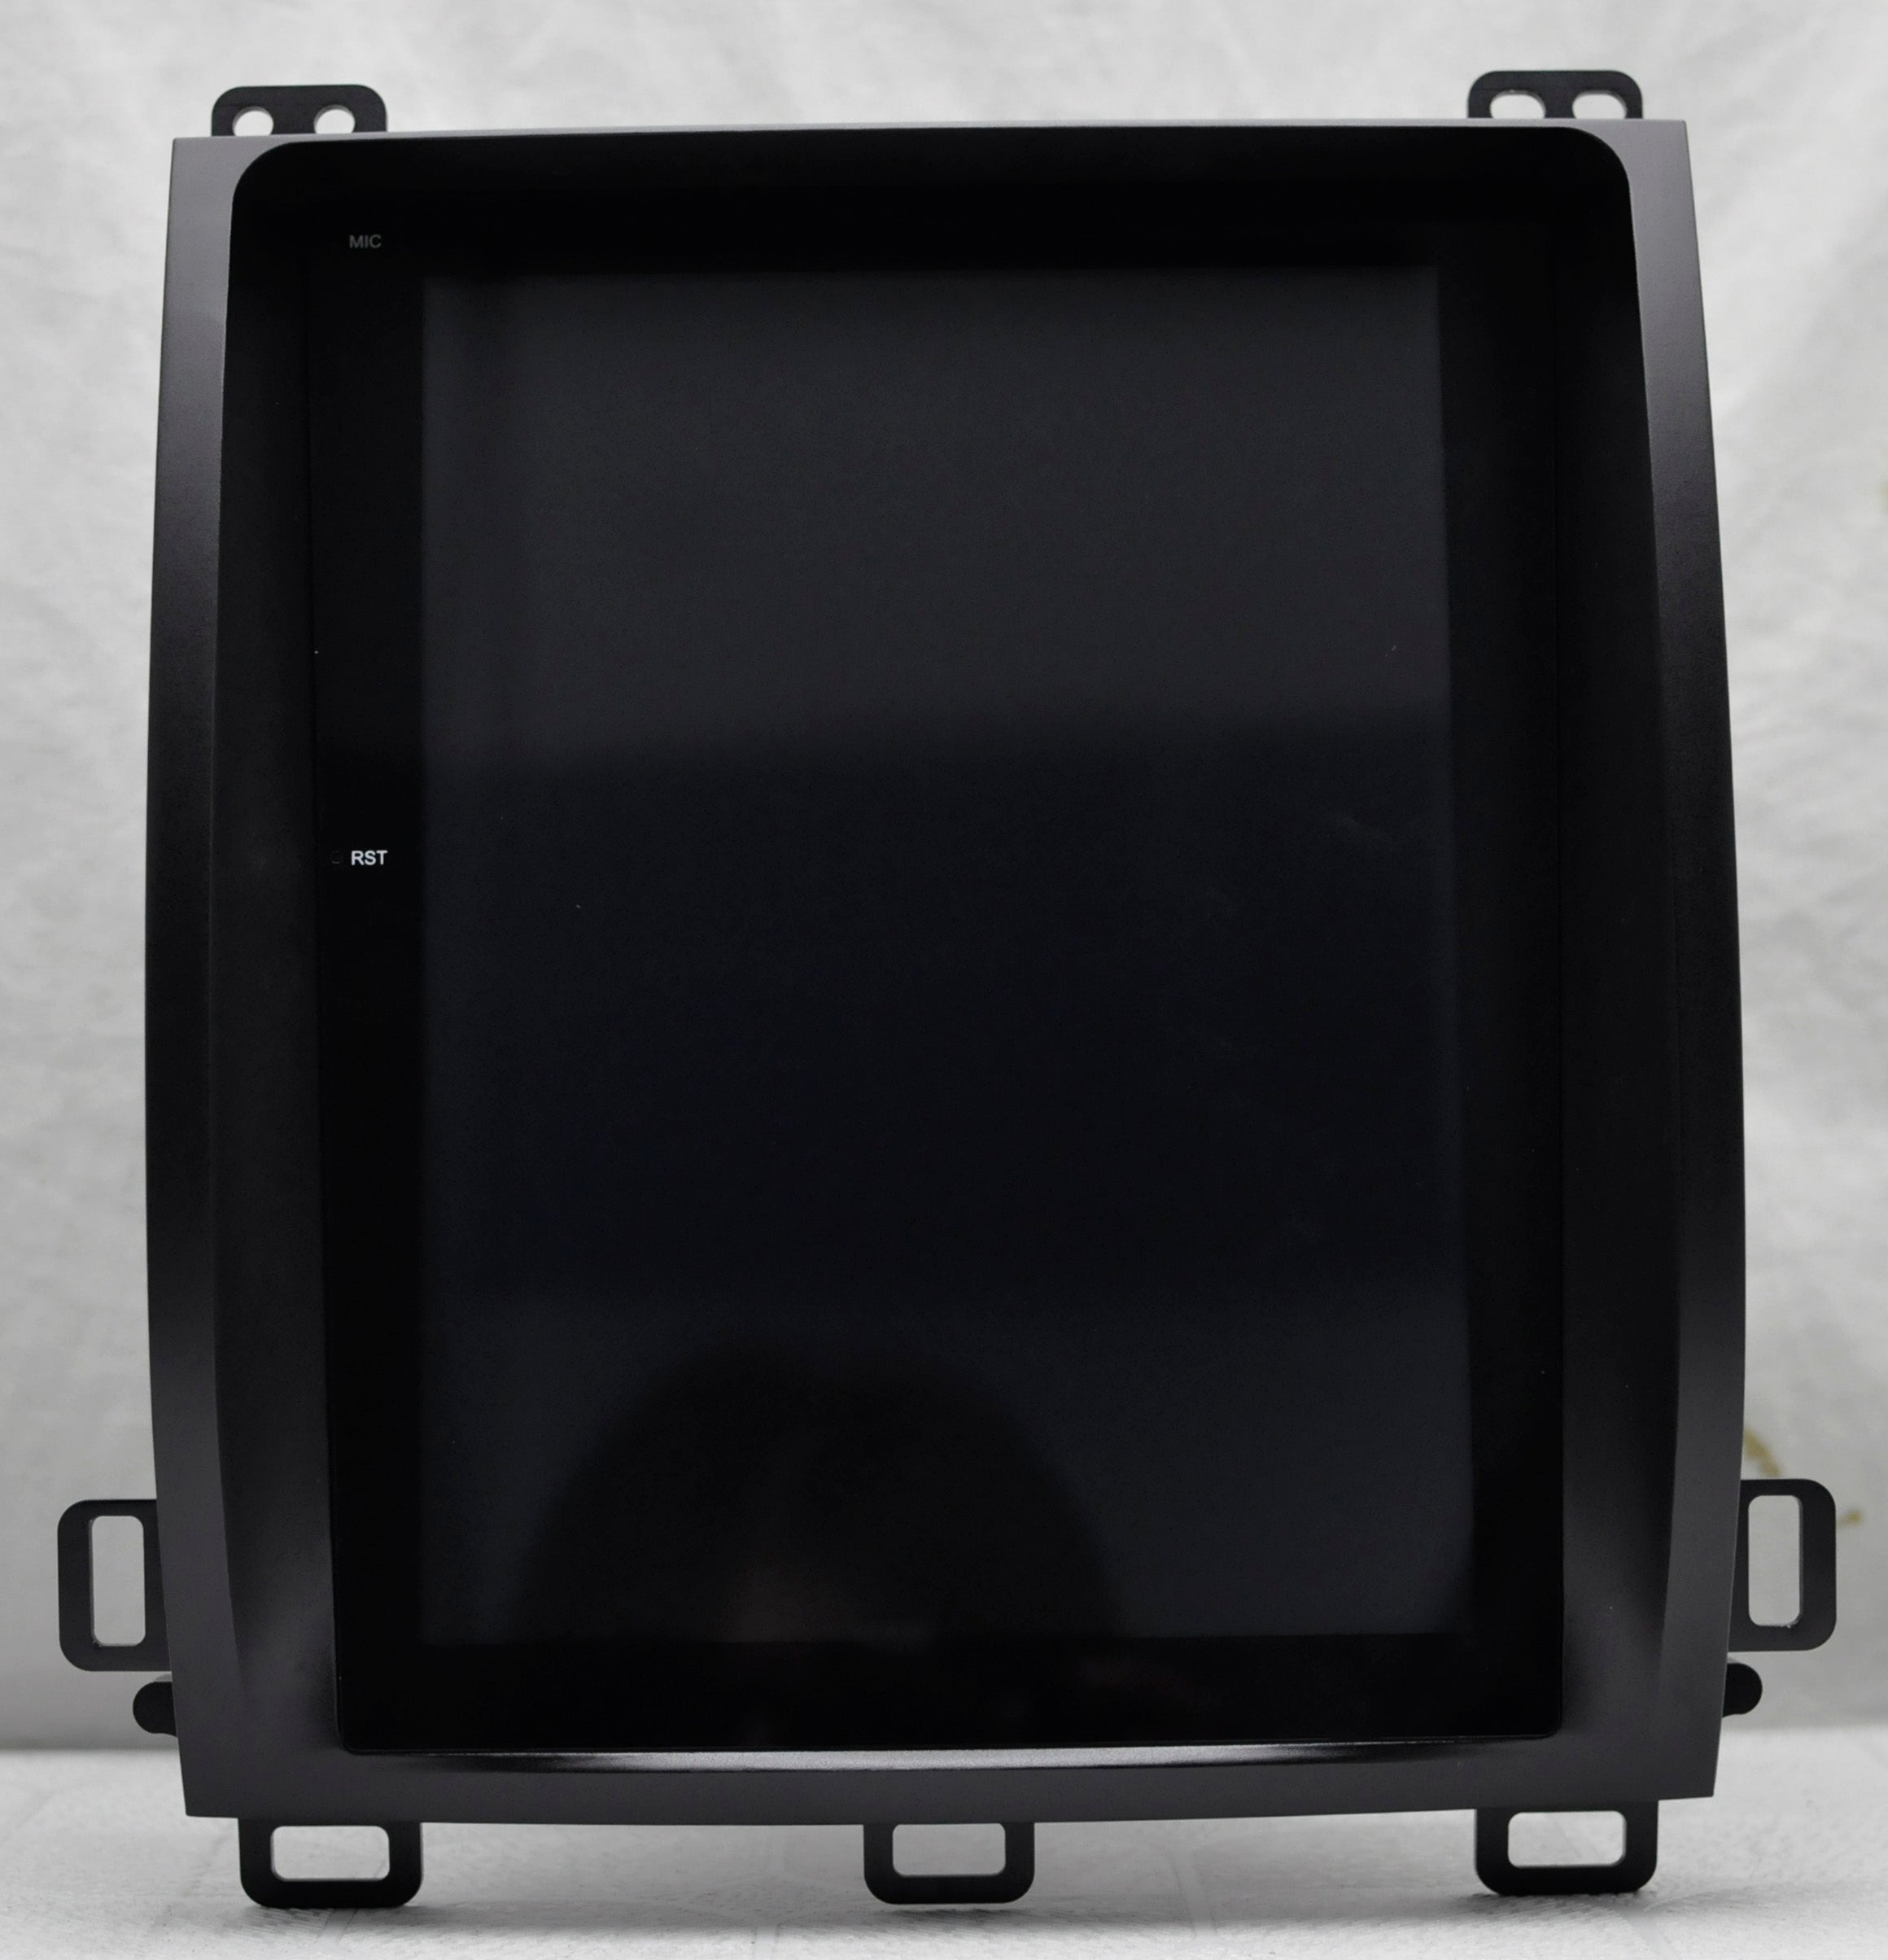 "[Open Box] Lexus GX 470 2002 - 2009 10.4"" Vertical Screen Android Radio with Aluminum Alloy Bezel Tesla Style"